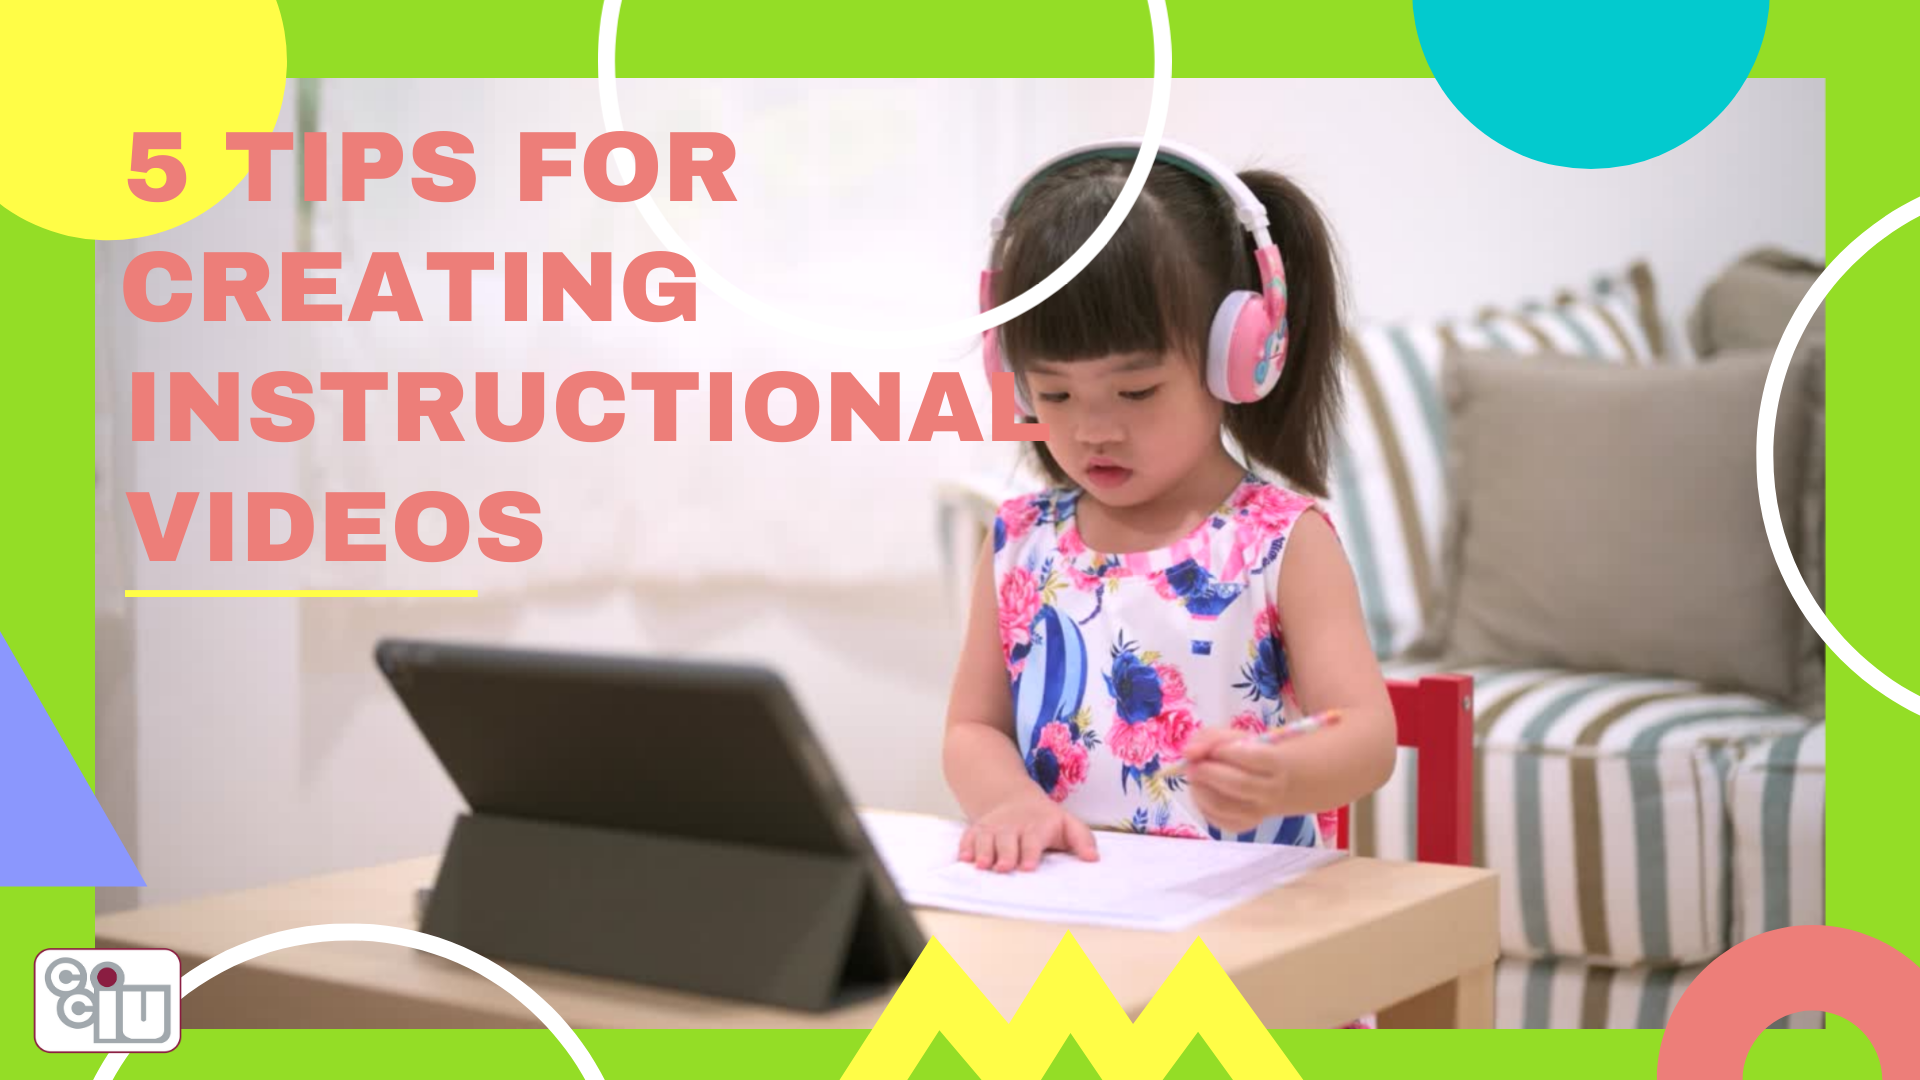 5 Tips for Creating Instructional Videos